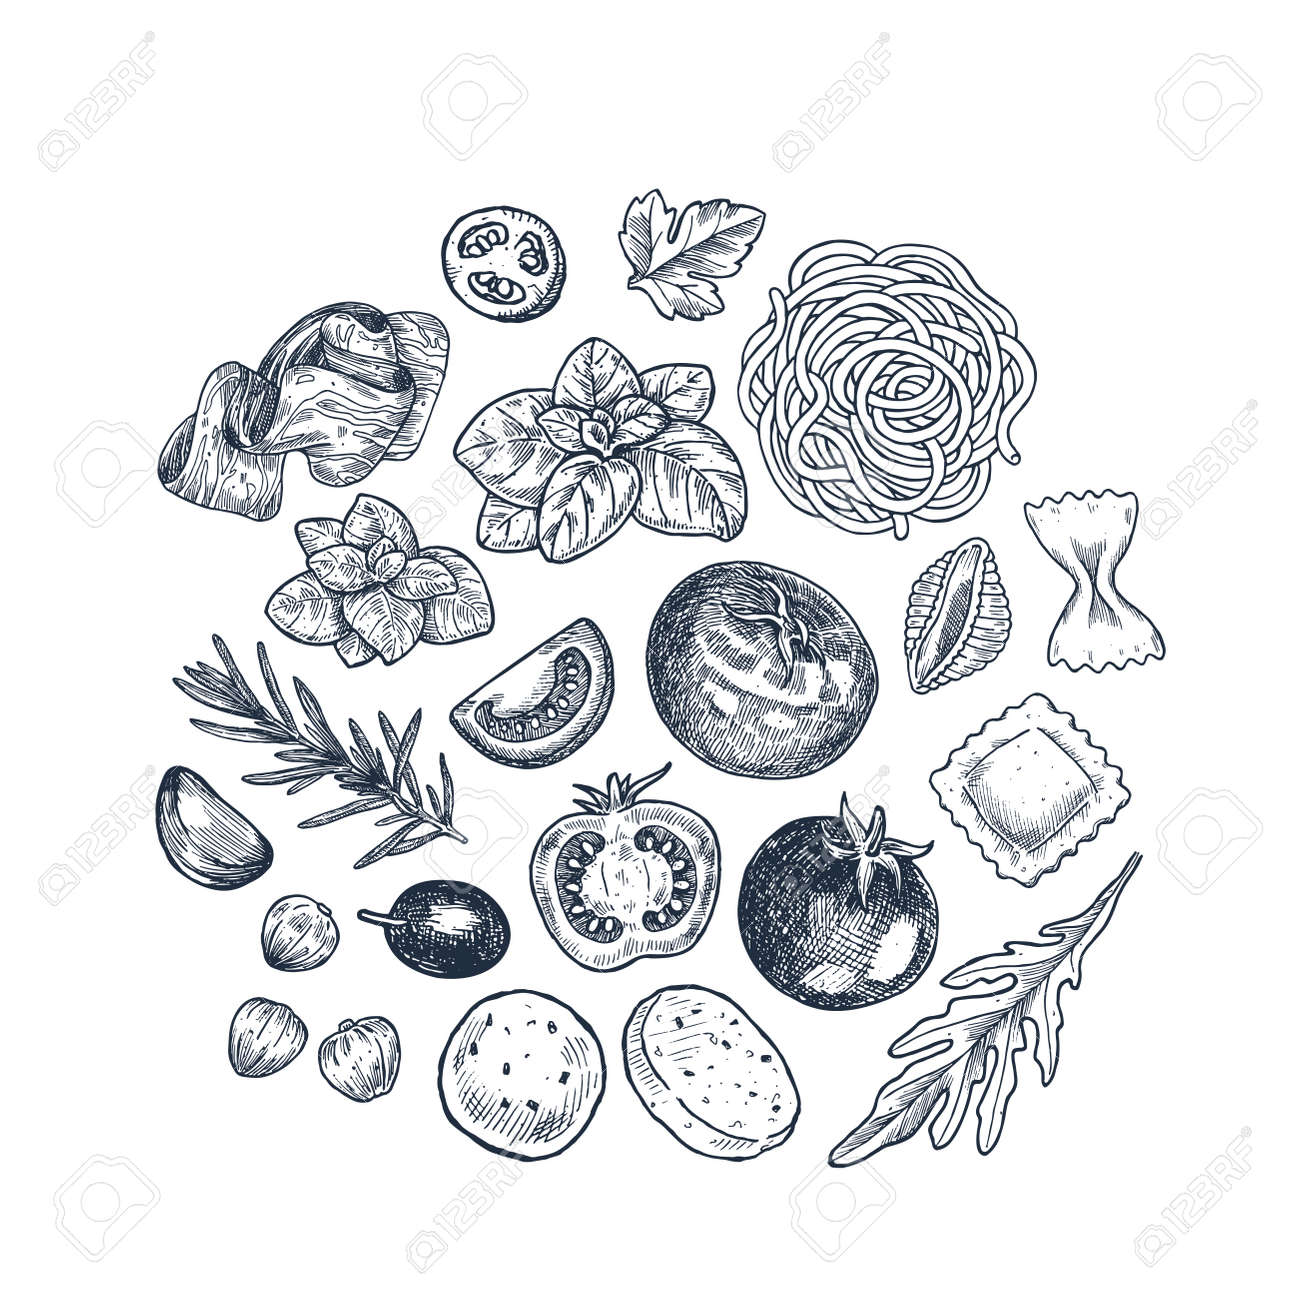 Tasty basil, tomato, olive, garlic, meat and pasta linear elements. Engraved illustration. Italian ingredients. - 150282603